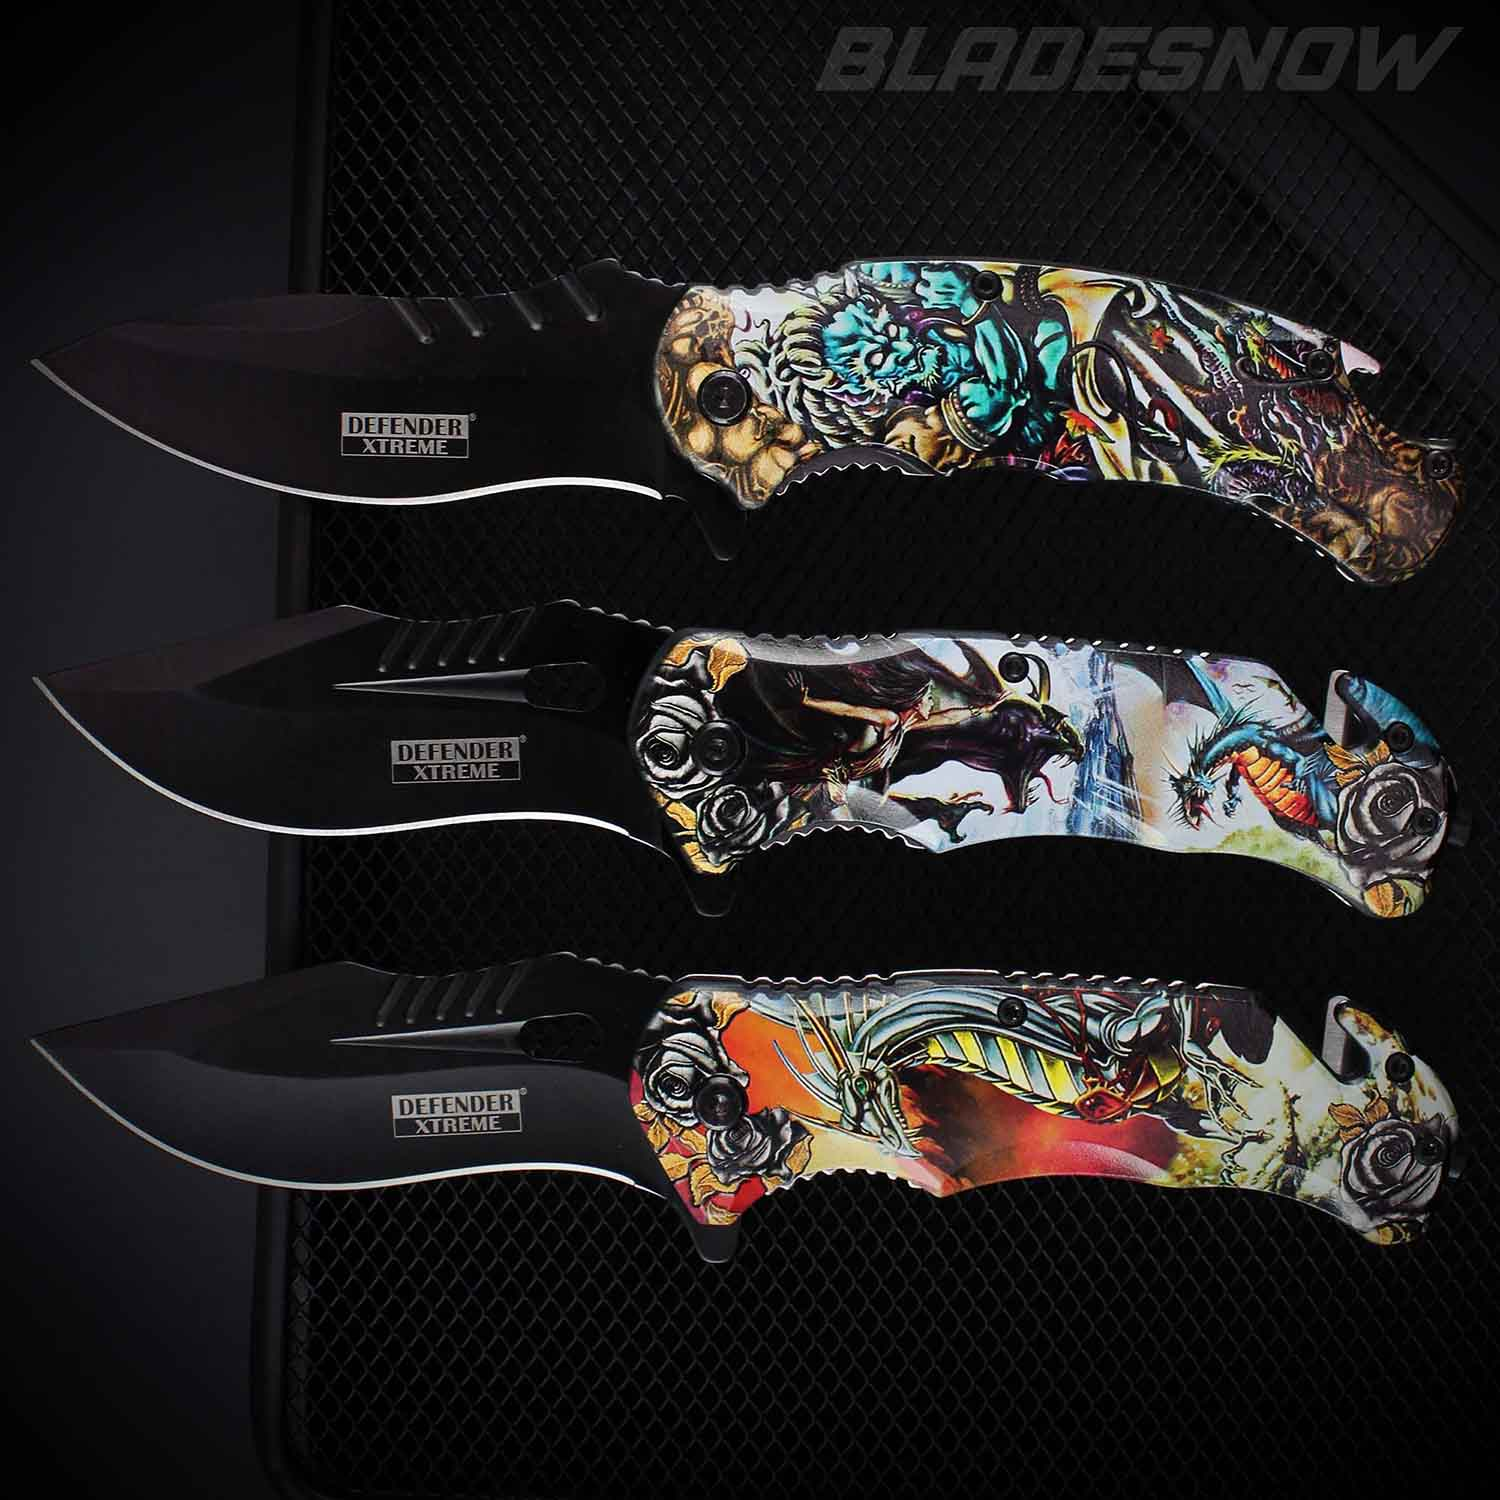 Dragons & Demons Spring Assisted Folder Knife Set